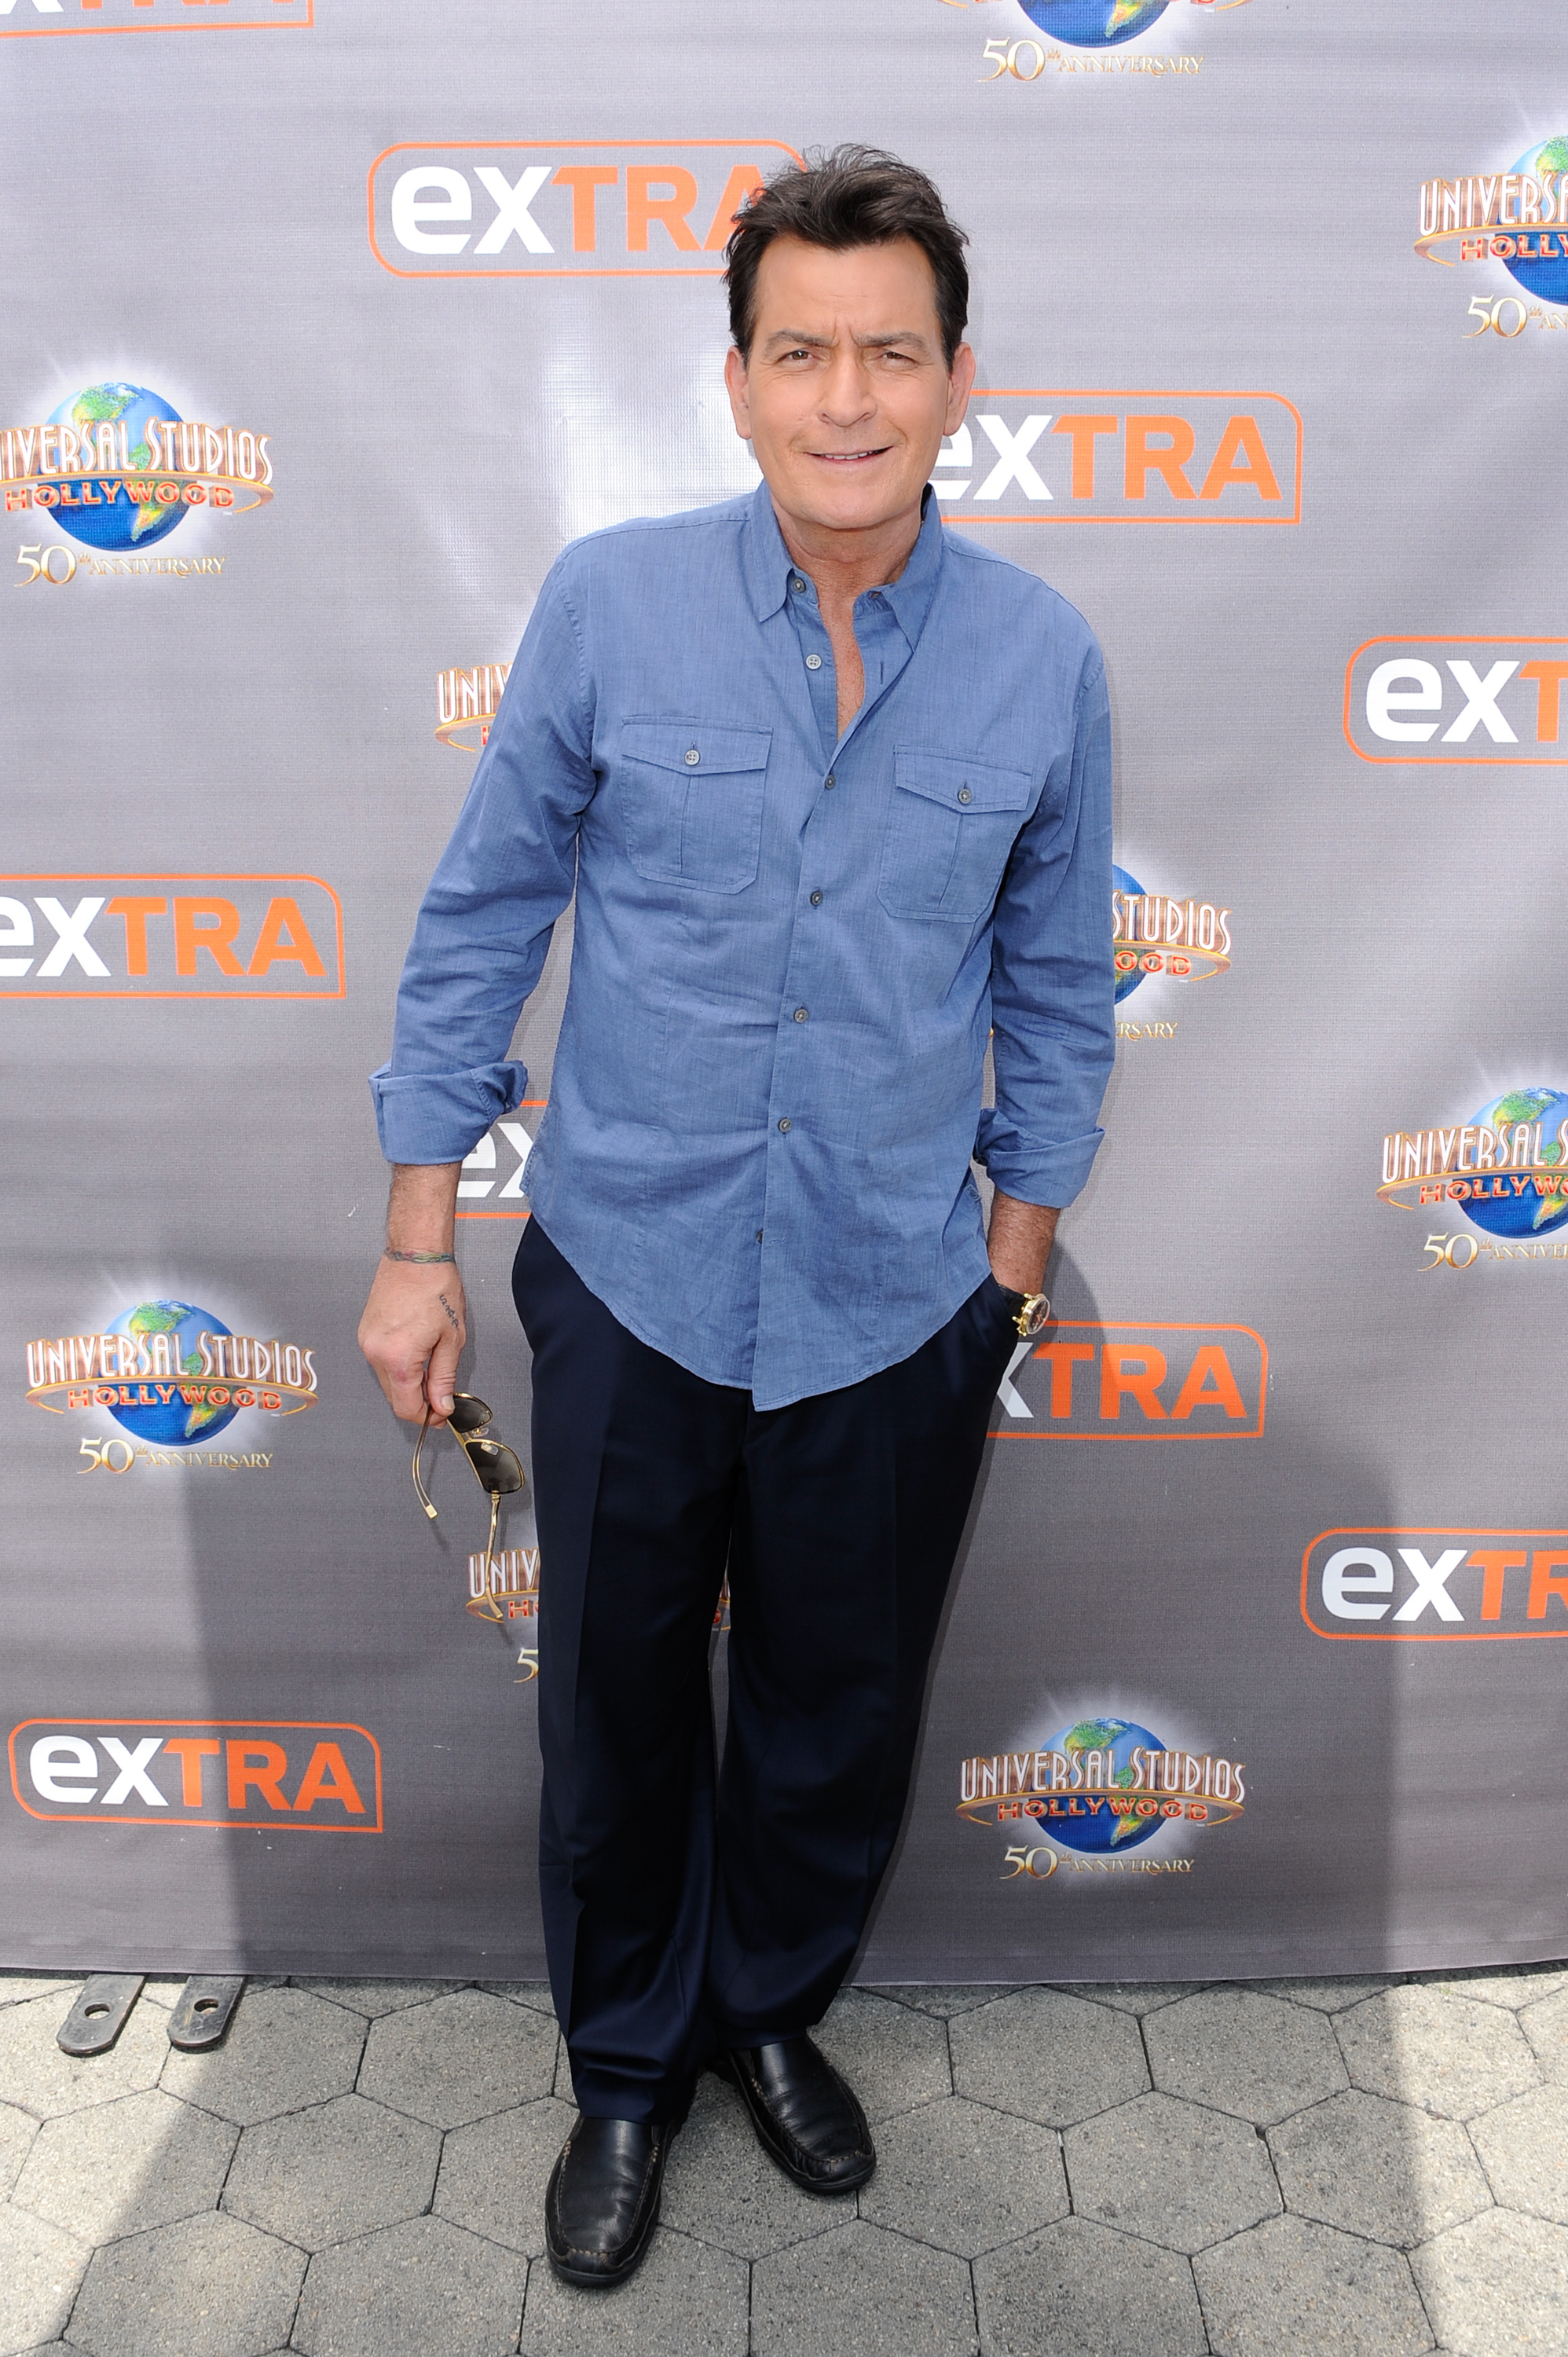 Charlie Sheen's kids are reportedly afraid of him